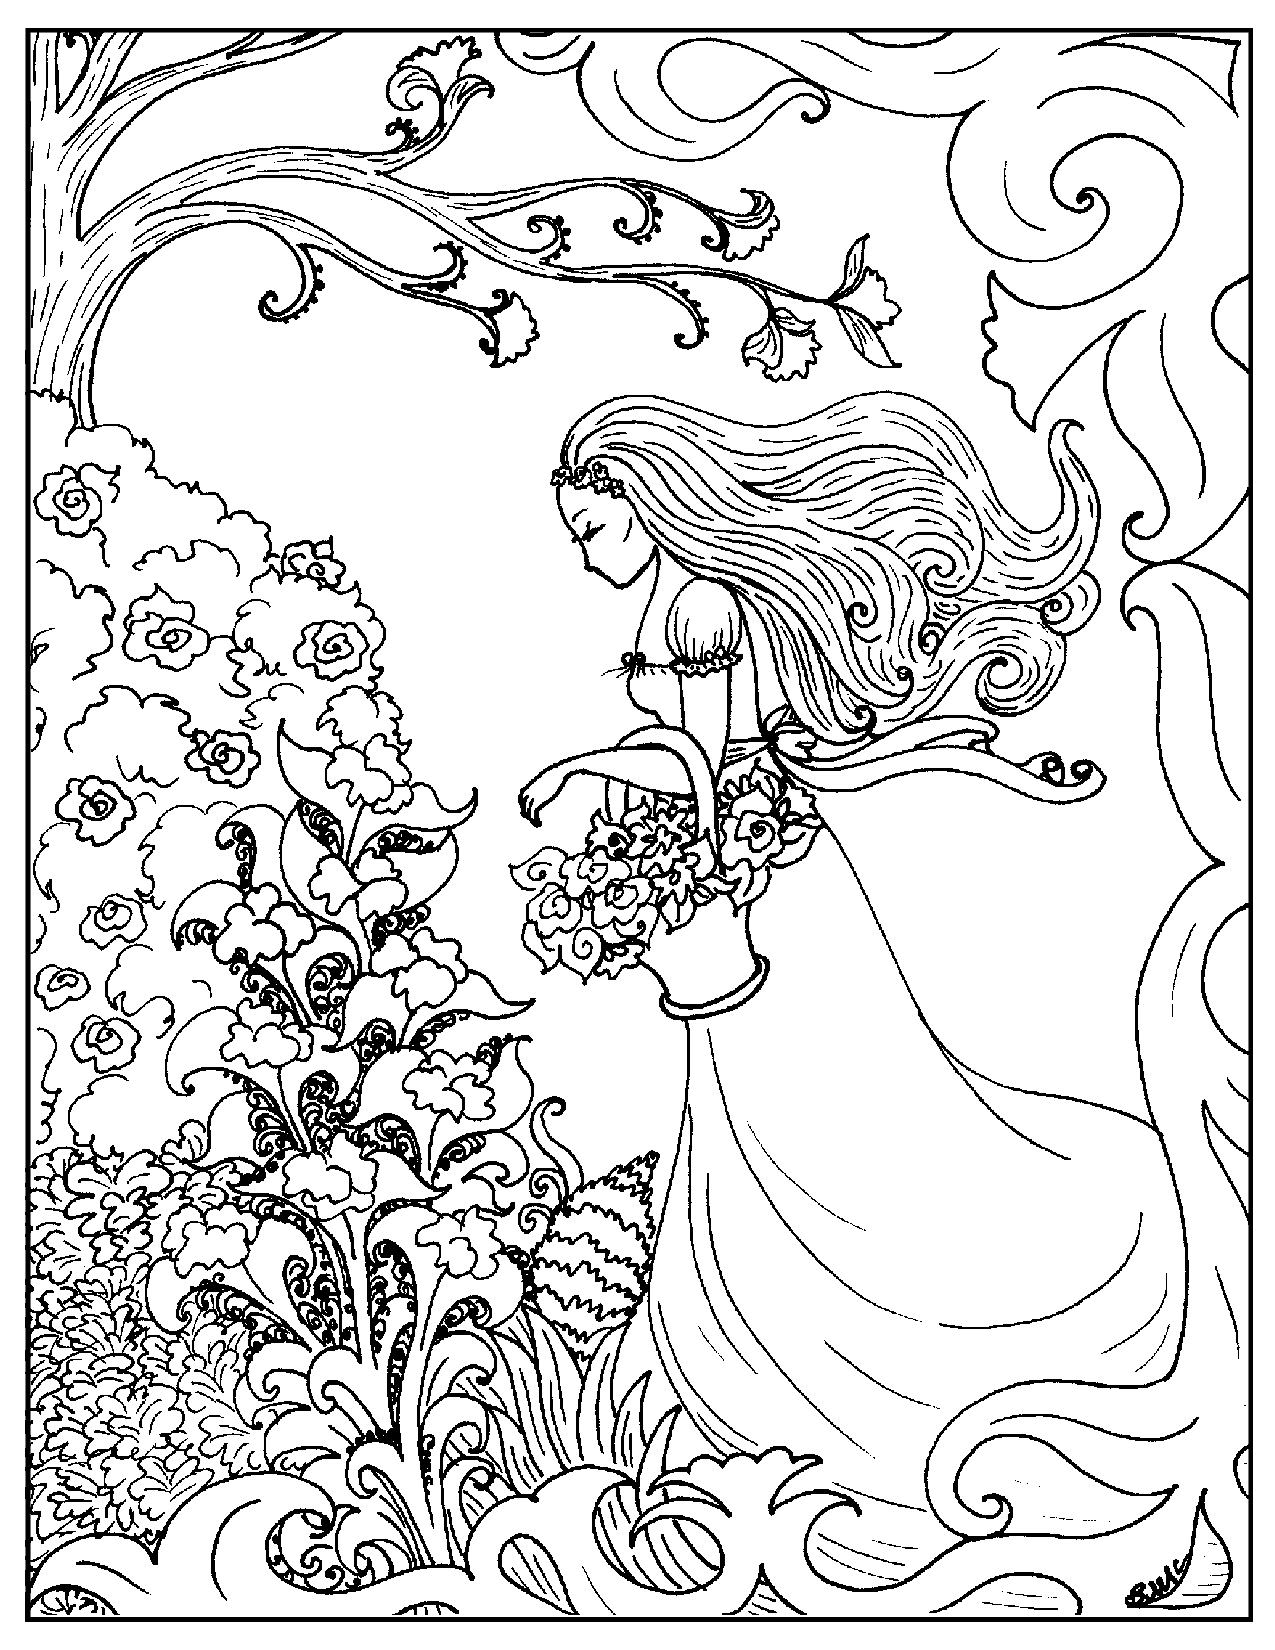 art deco coloring pages art nouveau coloring pages flower girl - Coloring Pages Art